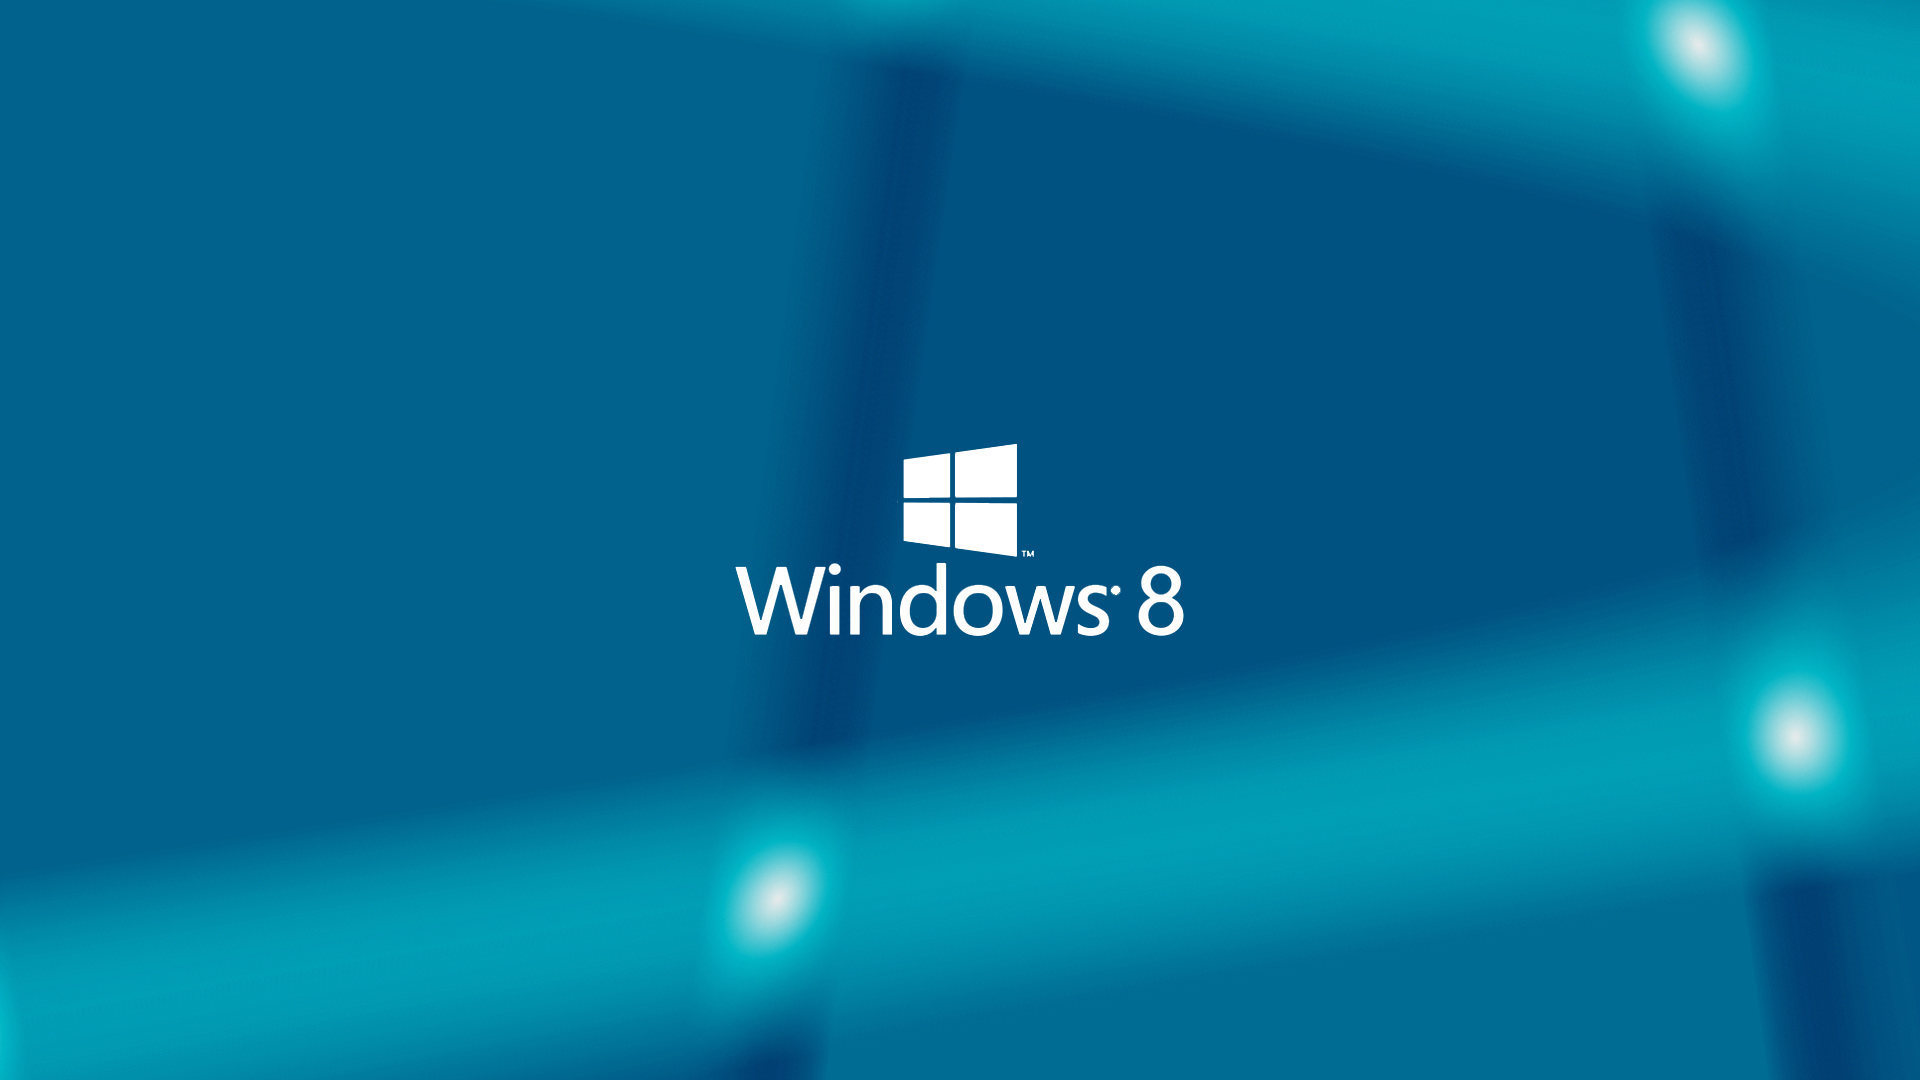 Windows 8 logo and photo hd walllpaper image picture for for New to windows